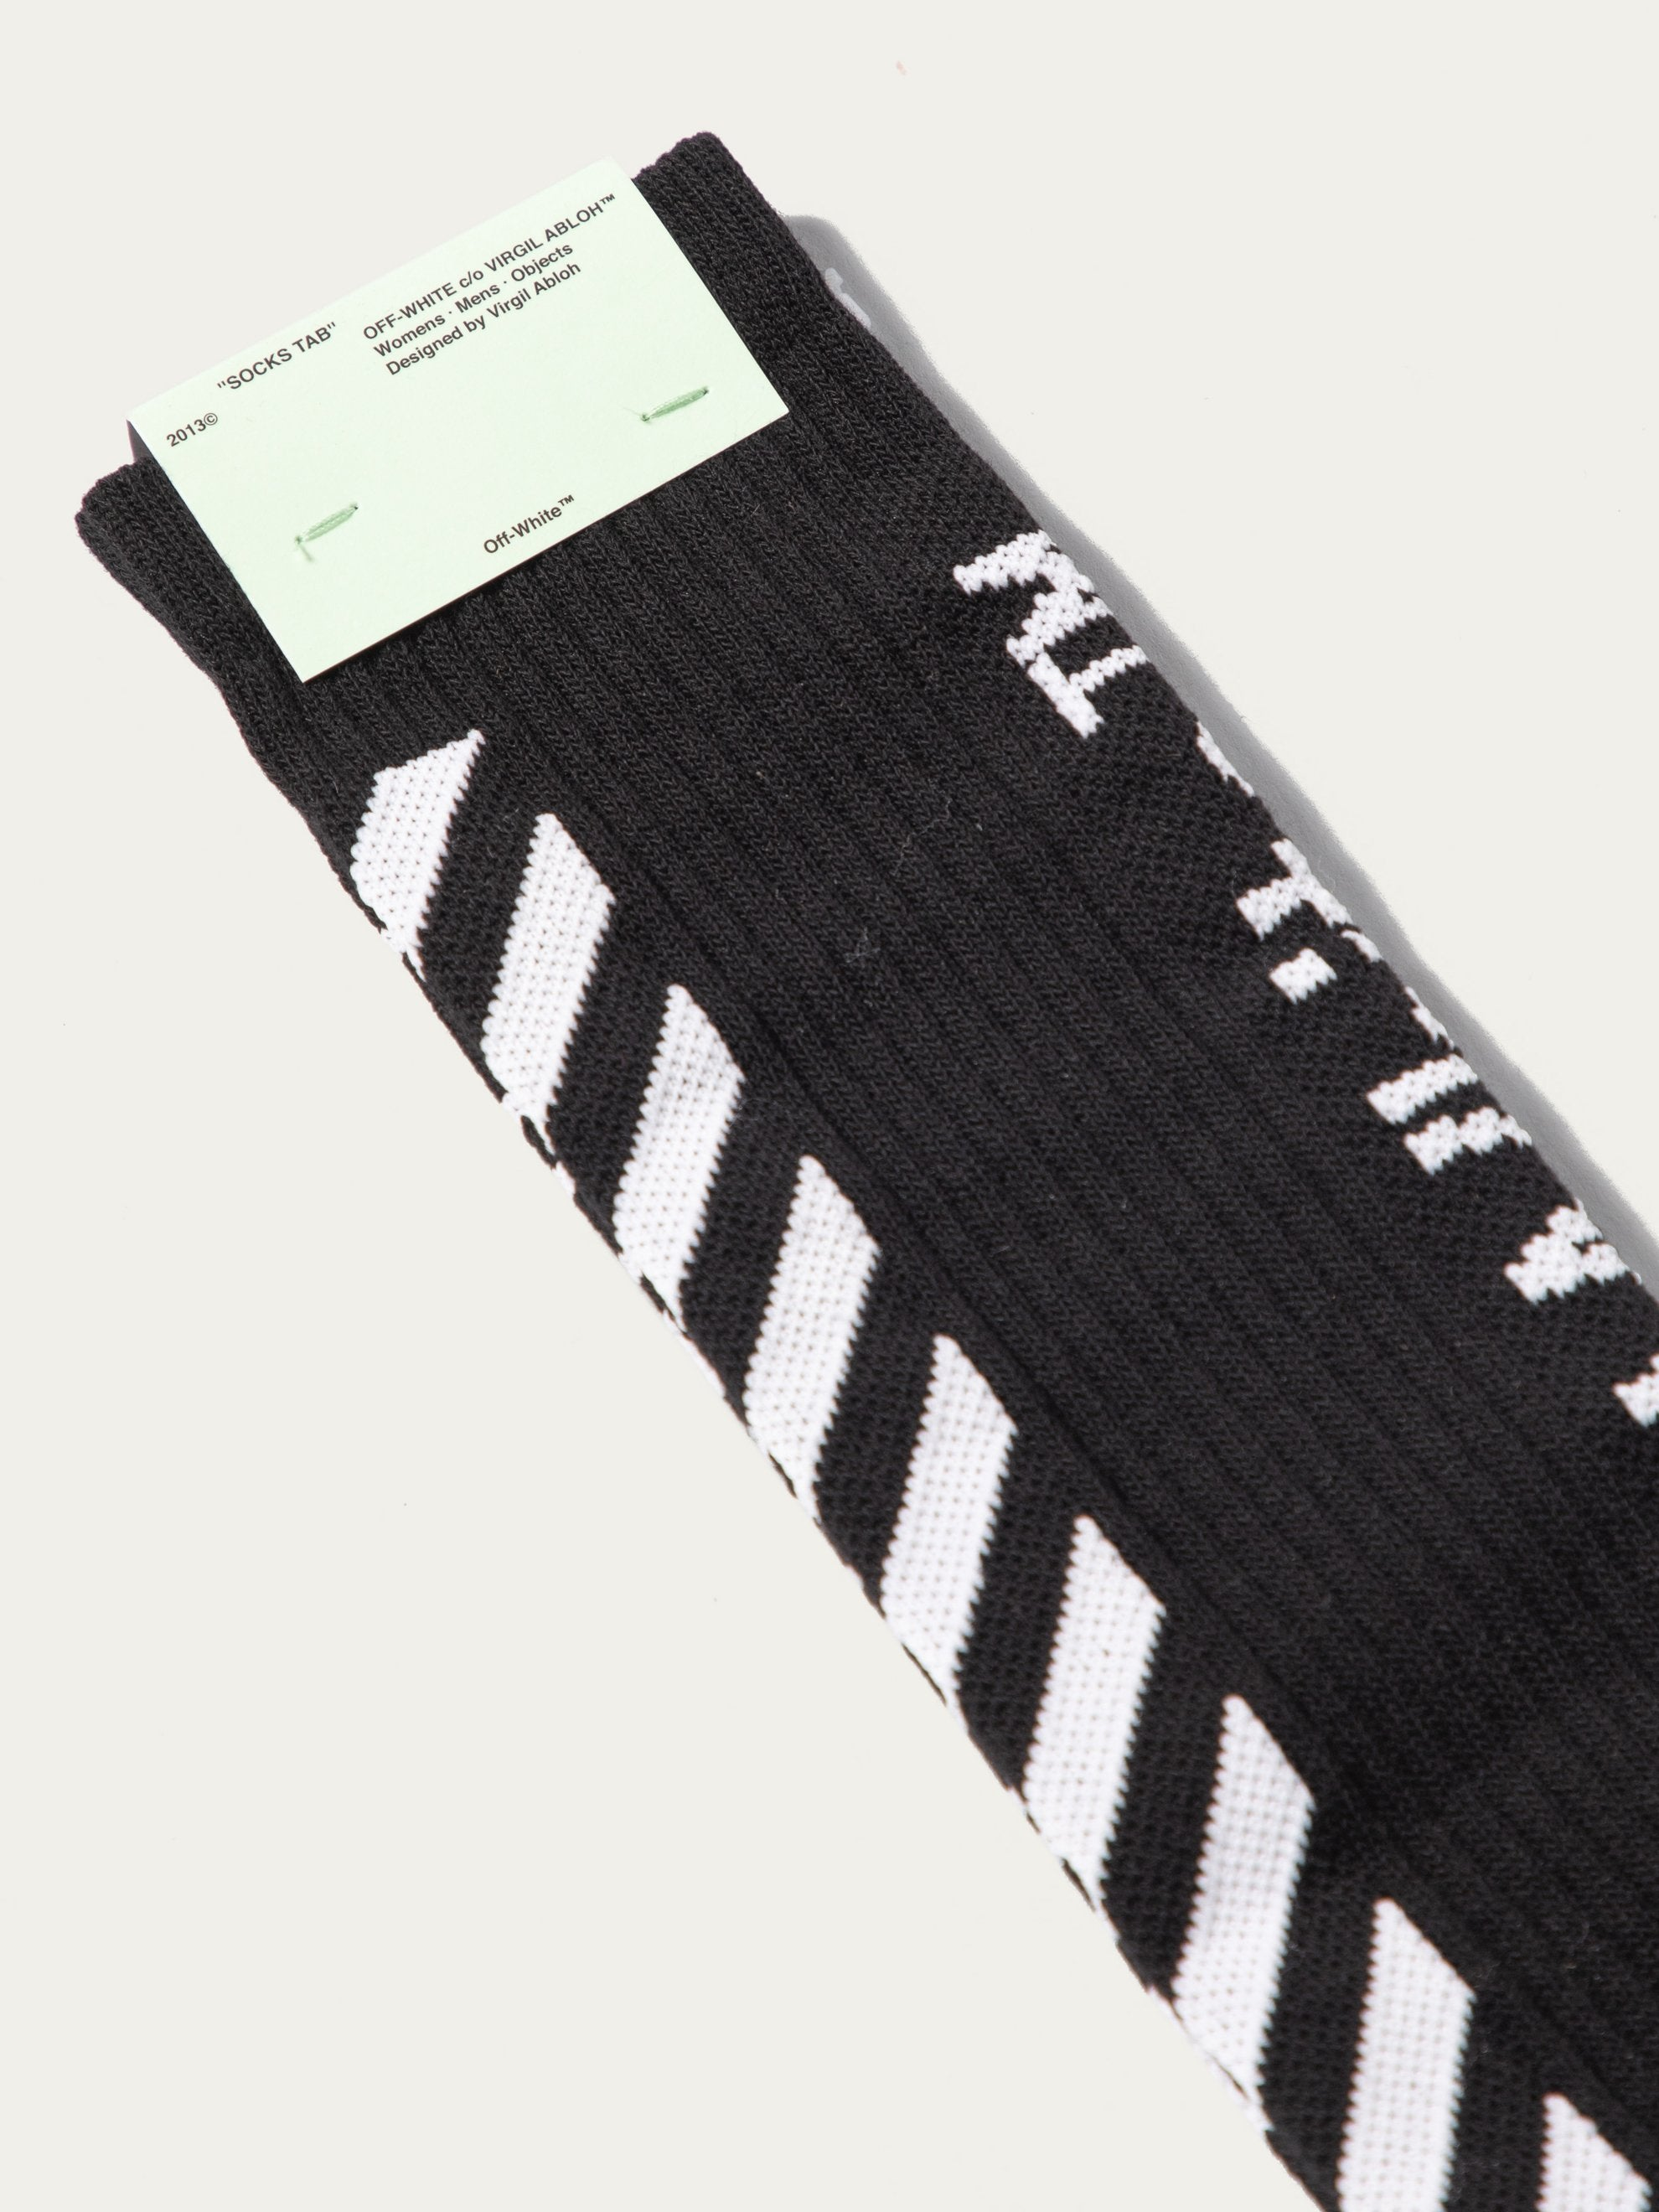 Black Diagonal Mid Length Socks 2